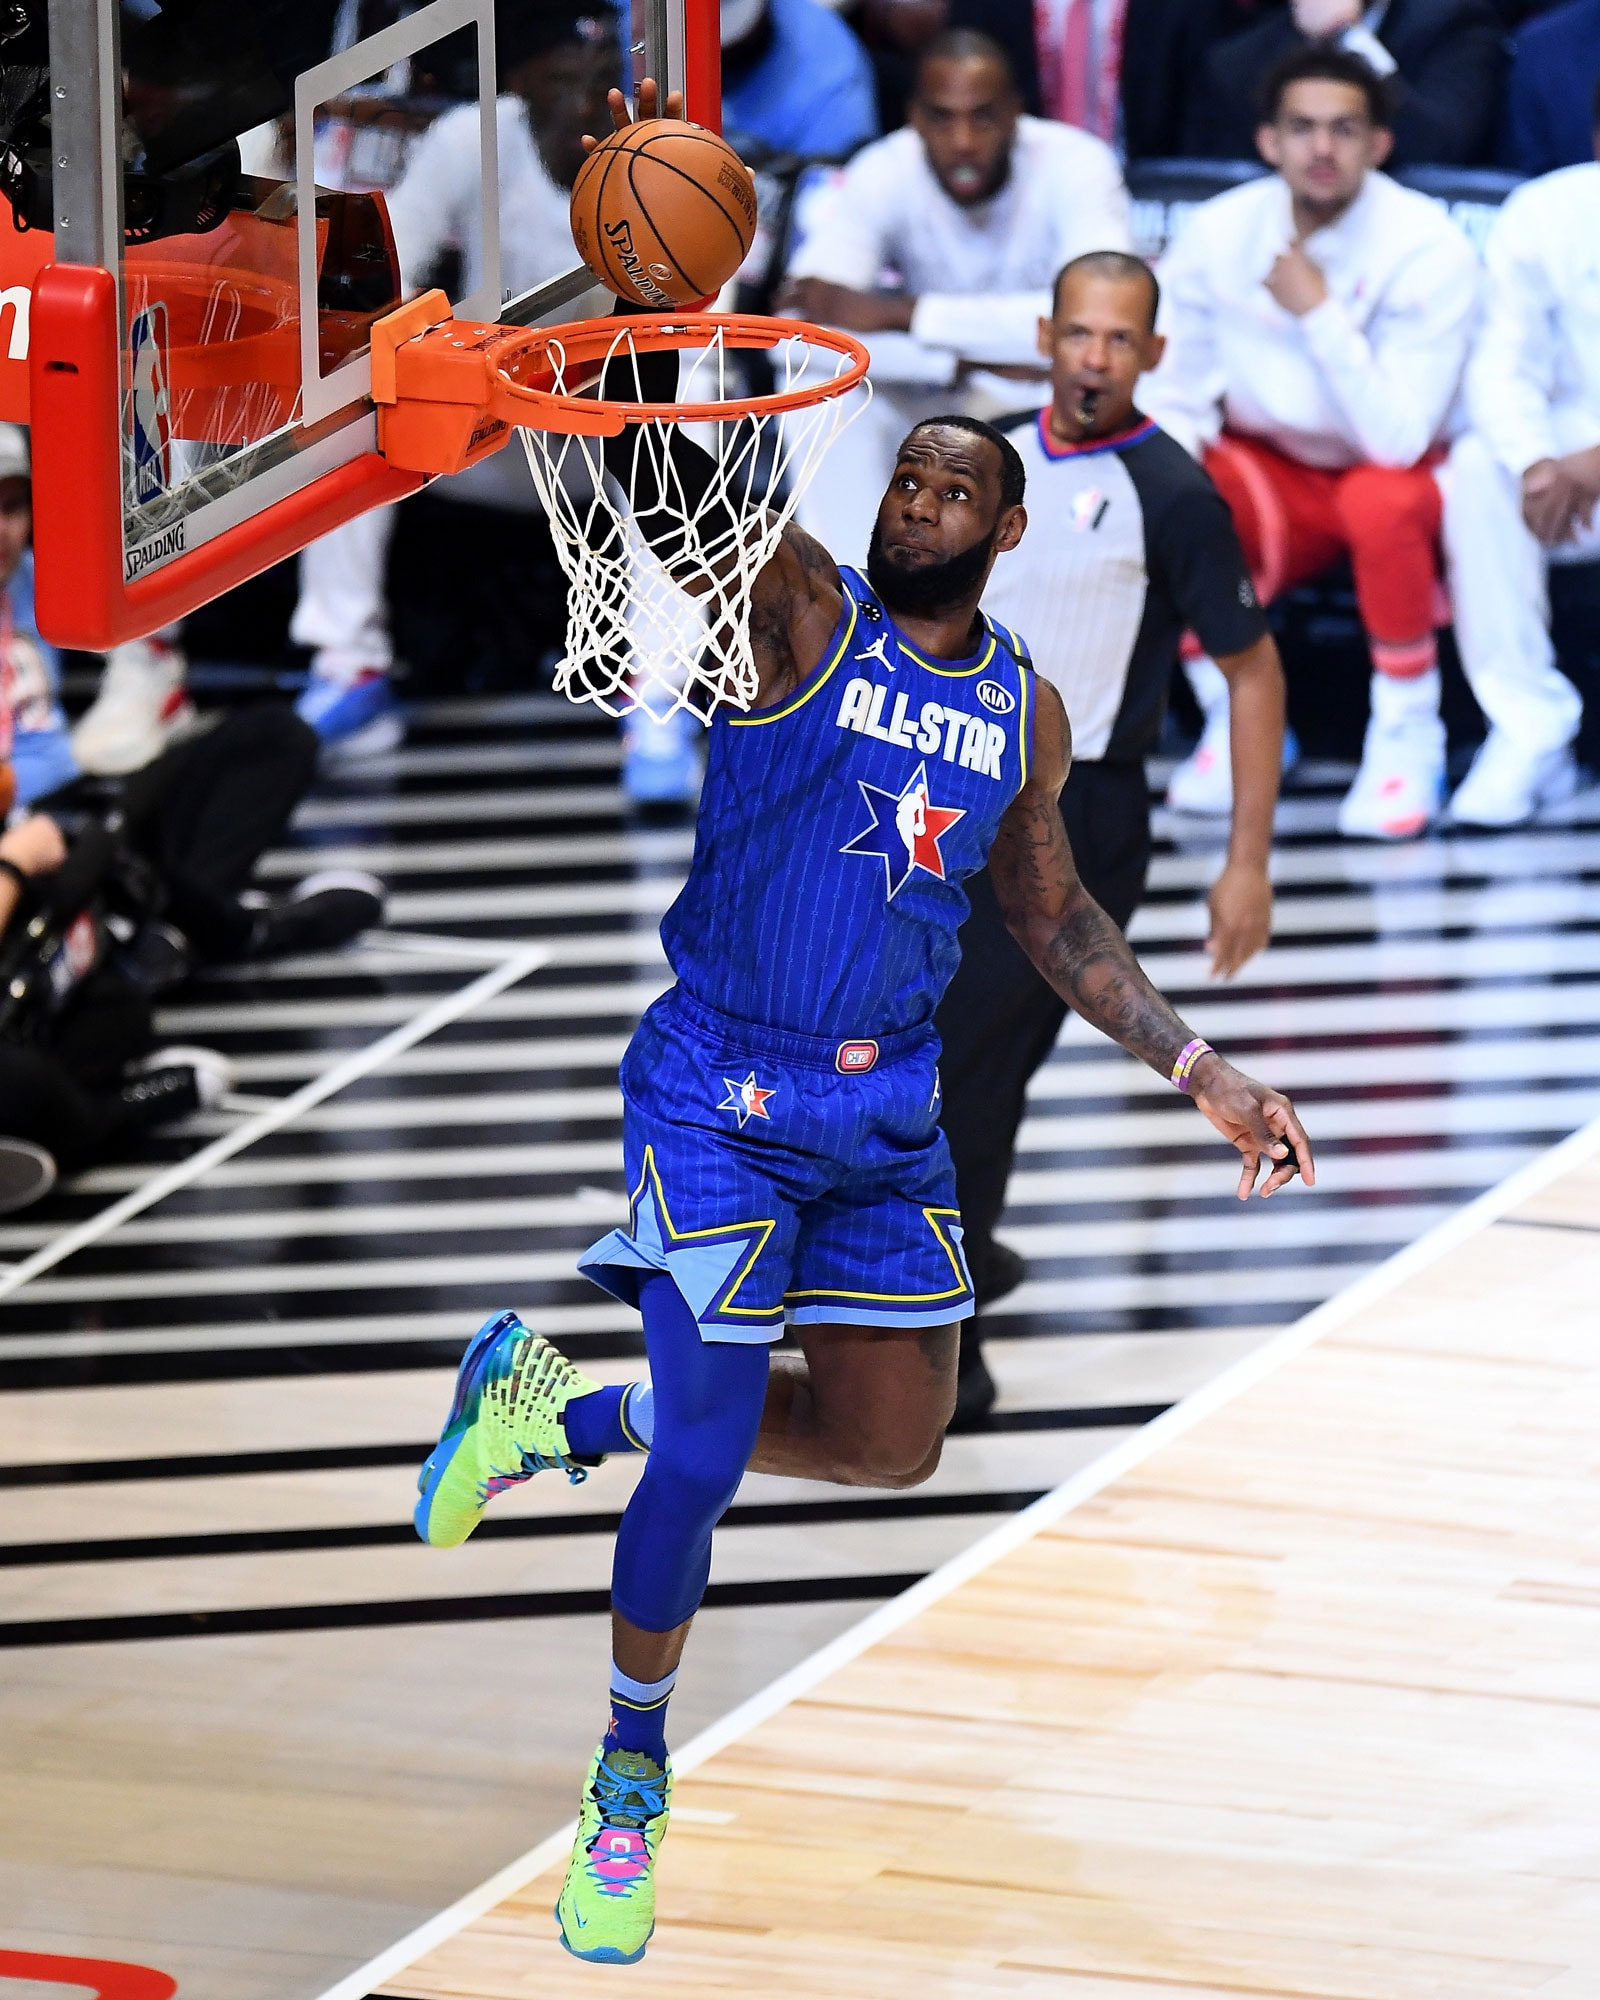 LeBron James finished with 23 points in the 2020 All-Star game.